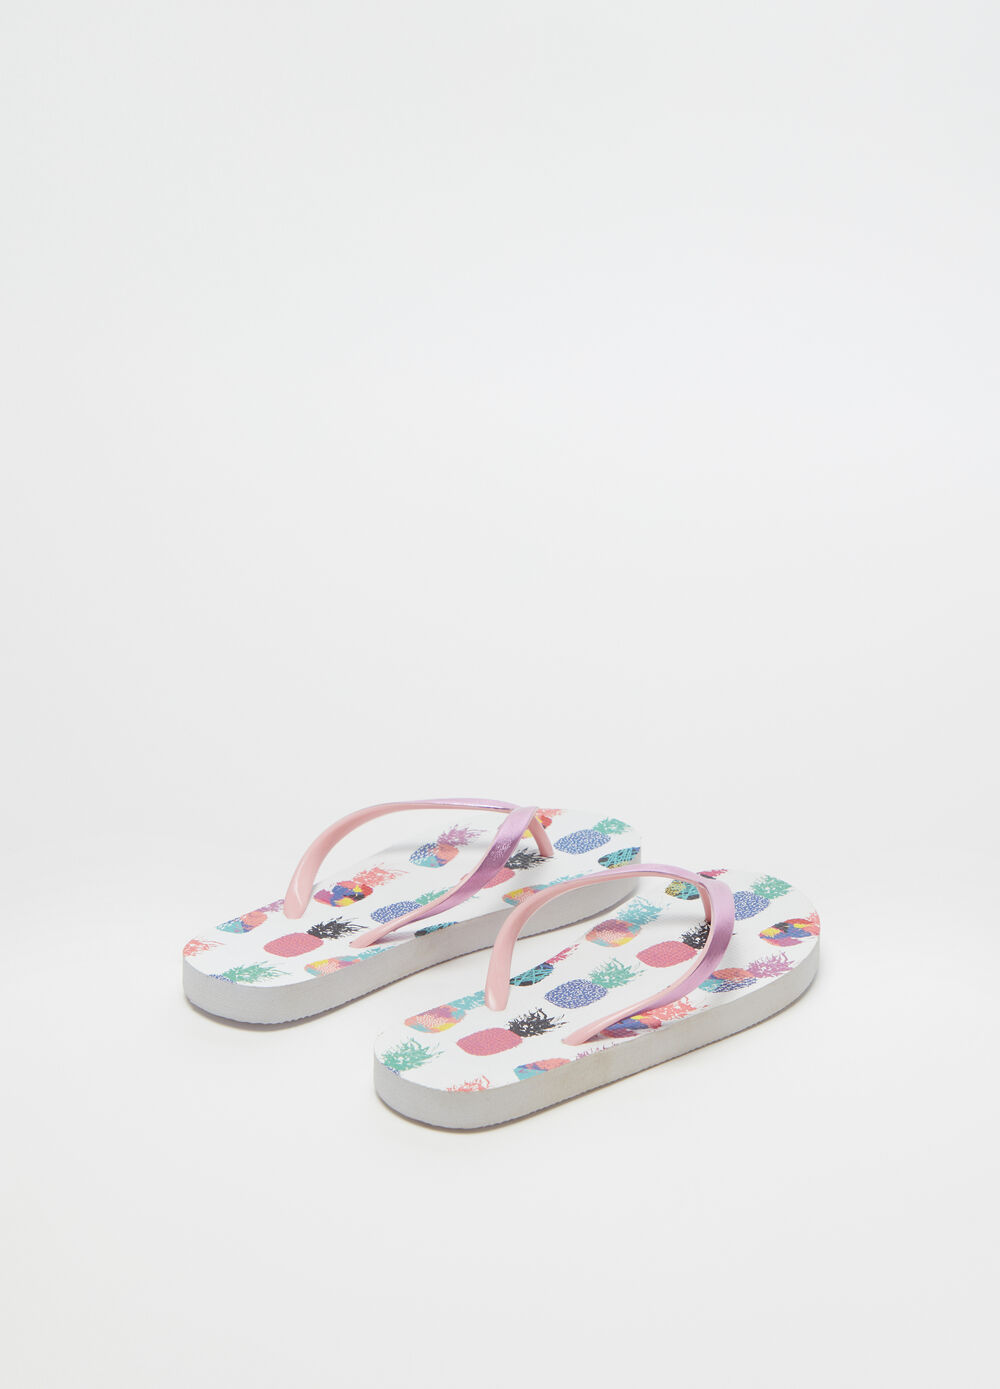 Thong sandals with pineapple pattern